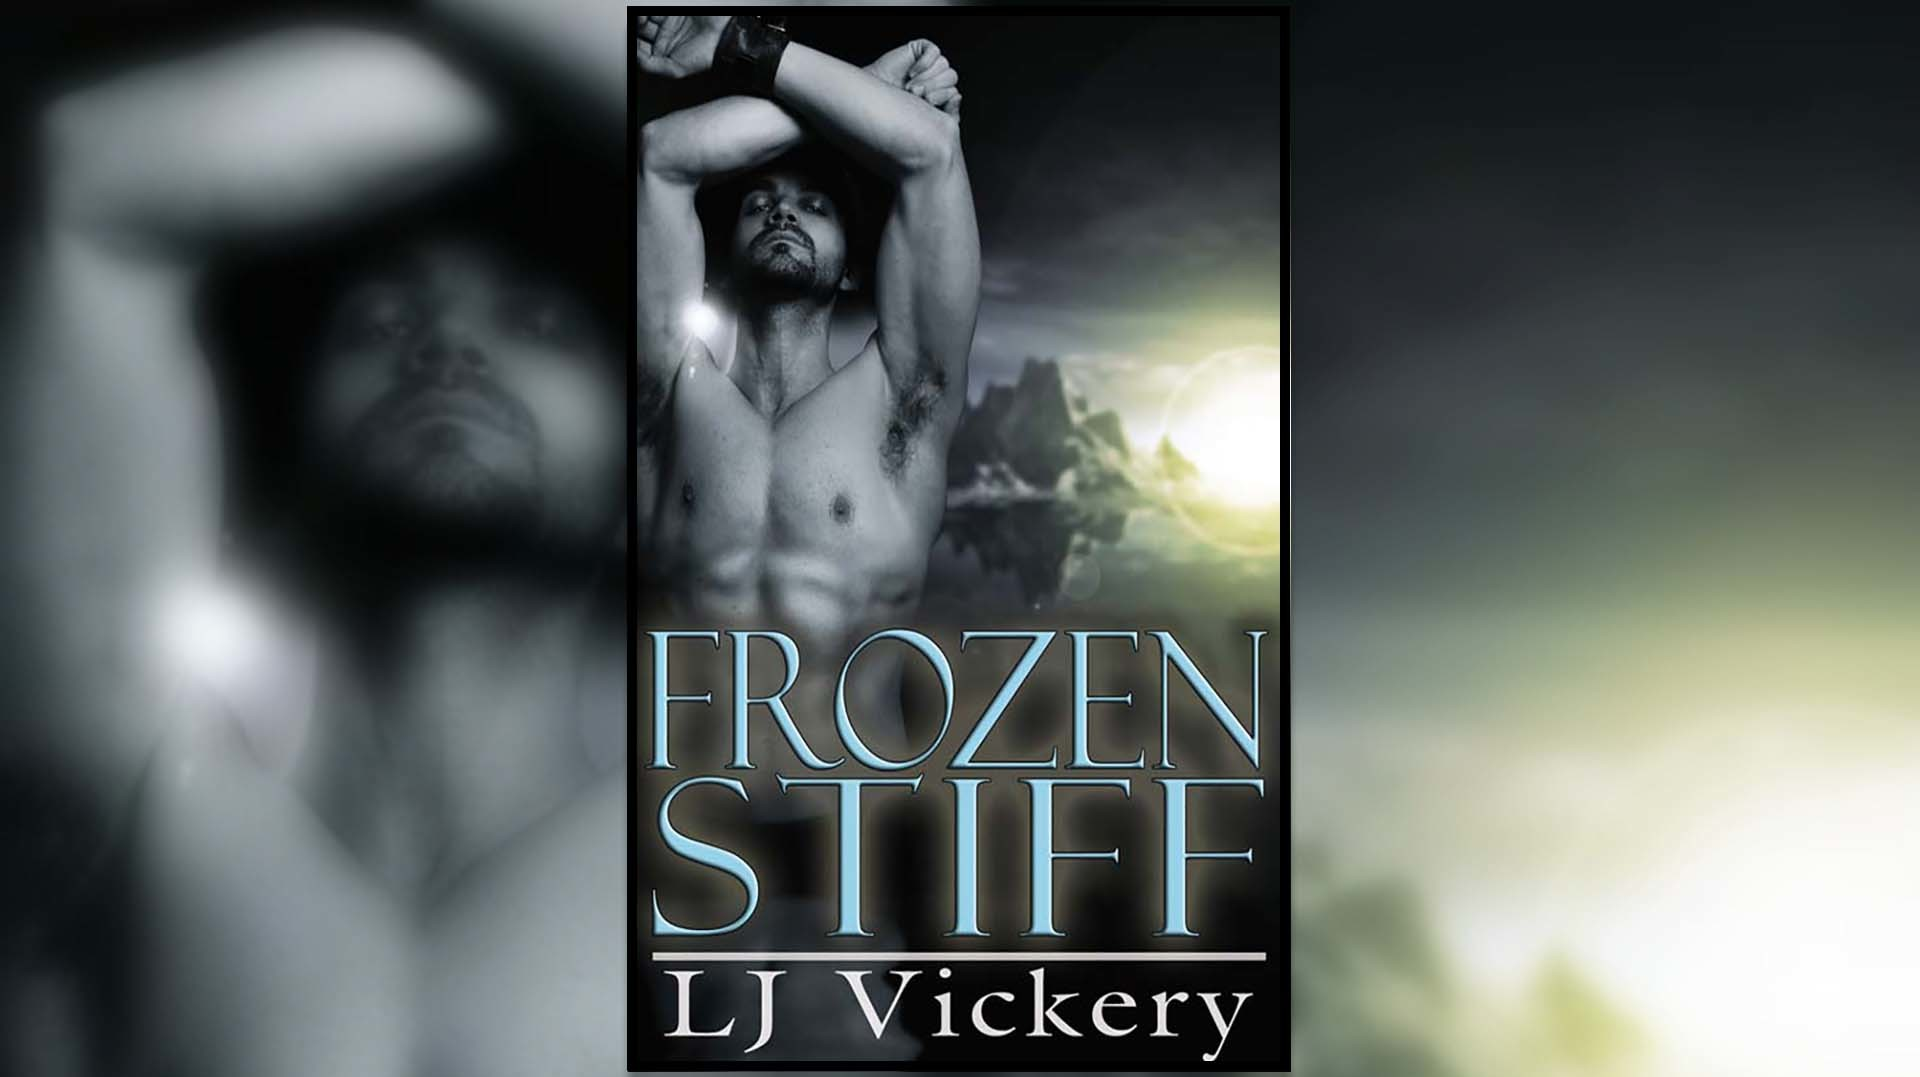 Erotic novel Frozen Stiff lives up to the title and this excerpt is proof